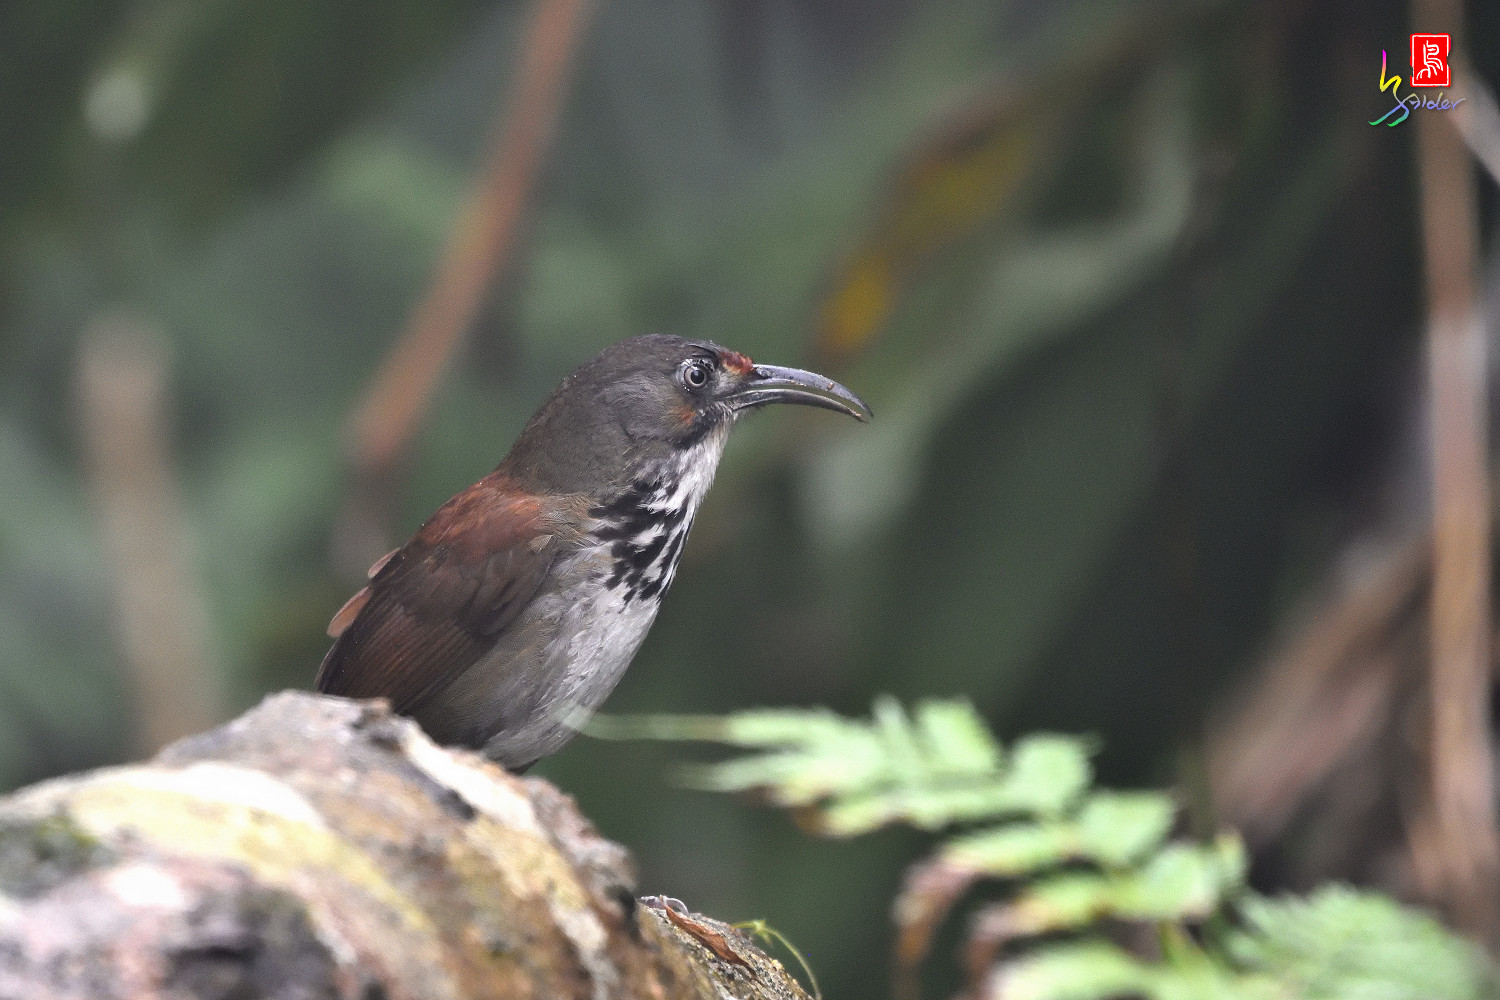 Rusty-cheeked_Scimitar-babbler_4431